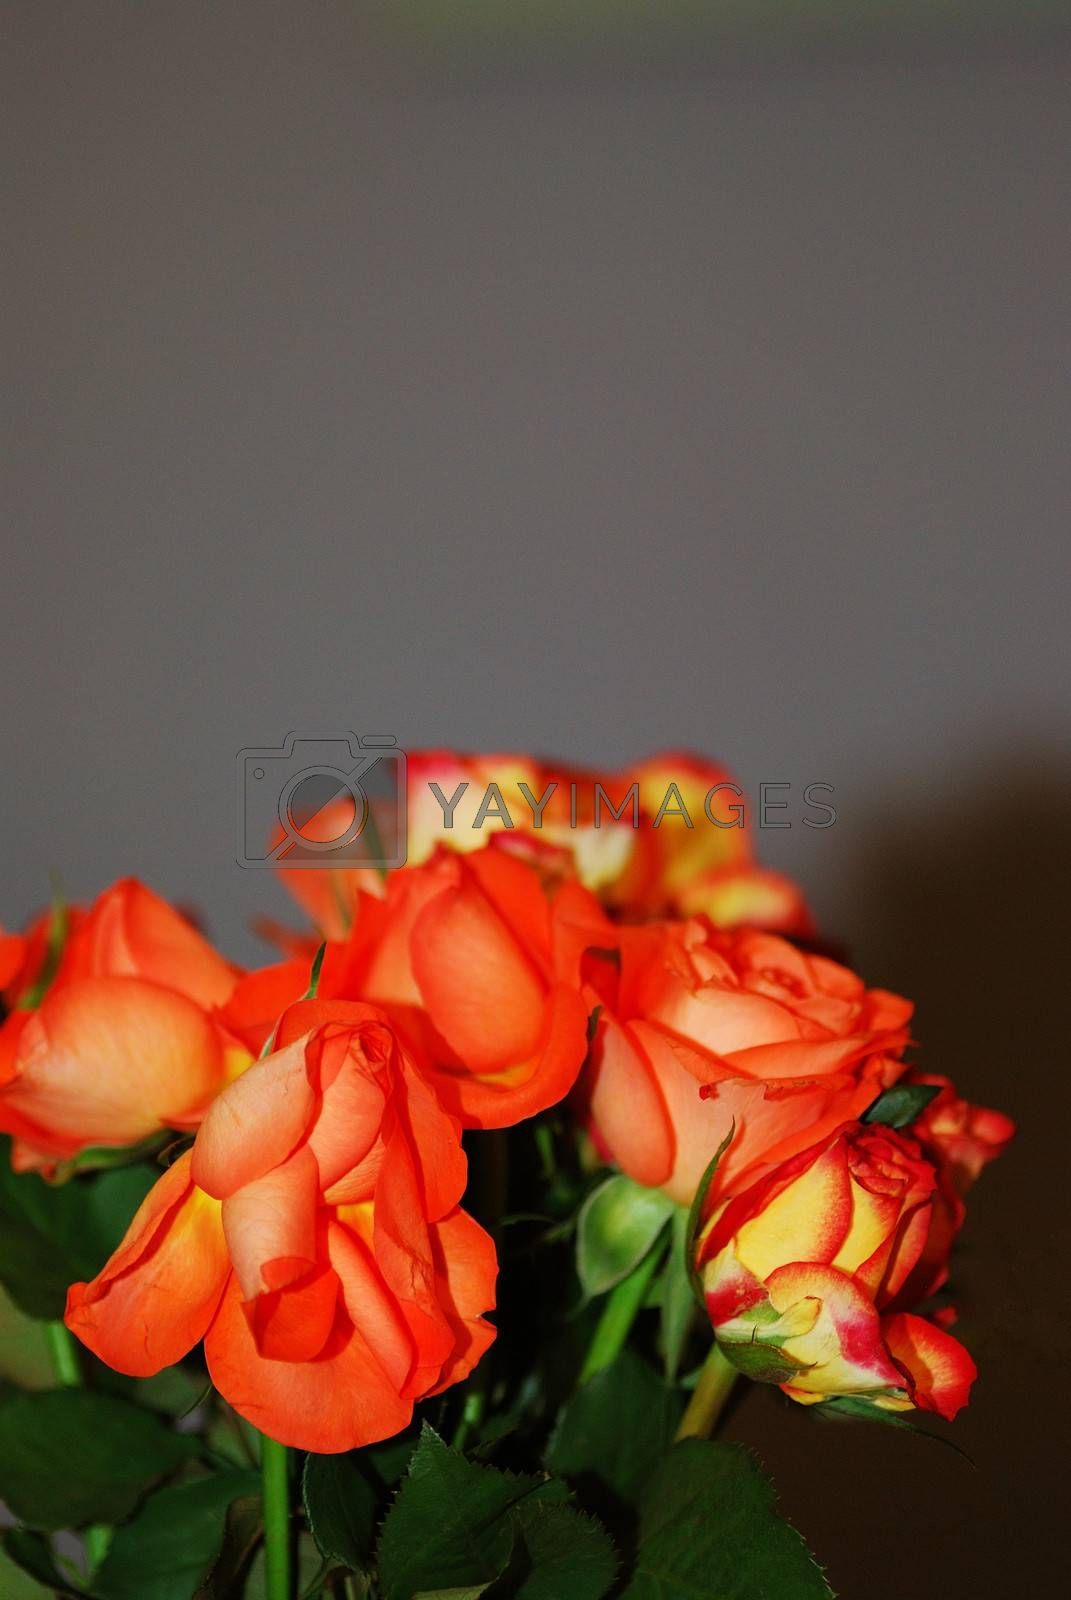 orange fresh roses background with portrait view